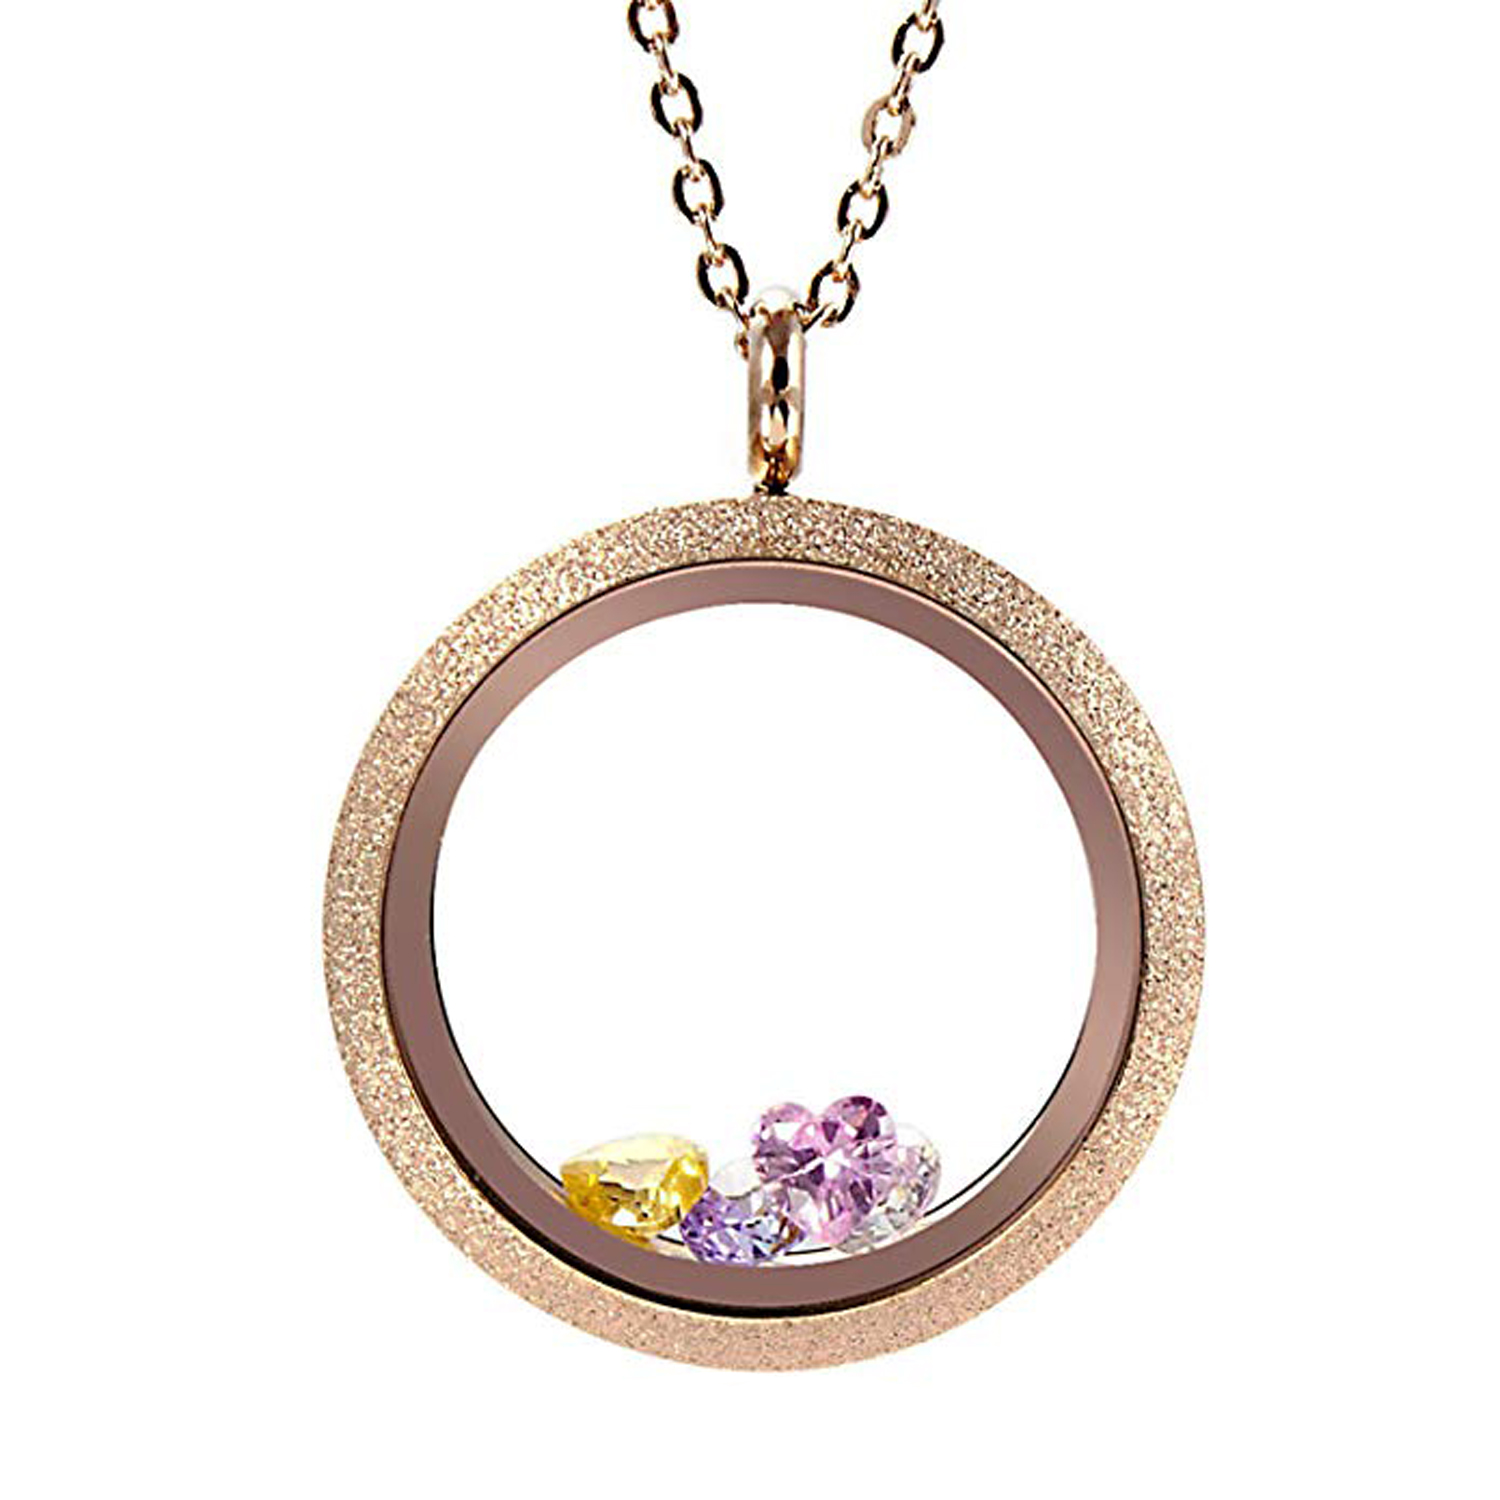 EVERLEAD Round Rose Gold Parkle Glass Floating Locket 316L Stainless Steel Newest 30mm Including Chains and Colorfull Zircon